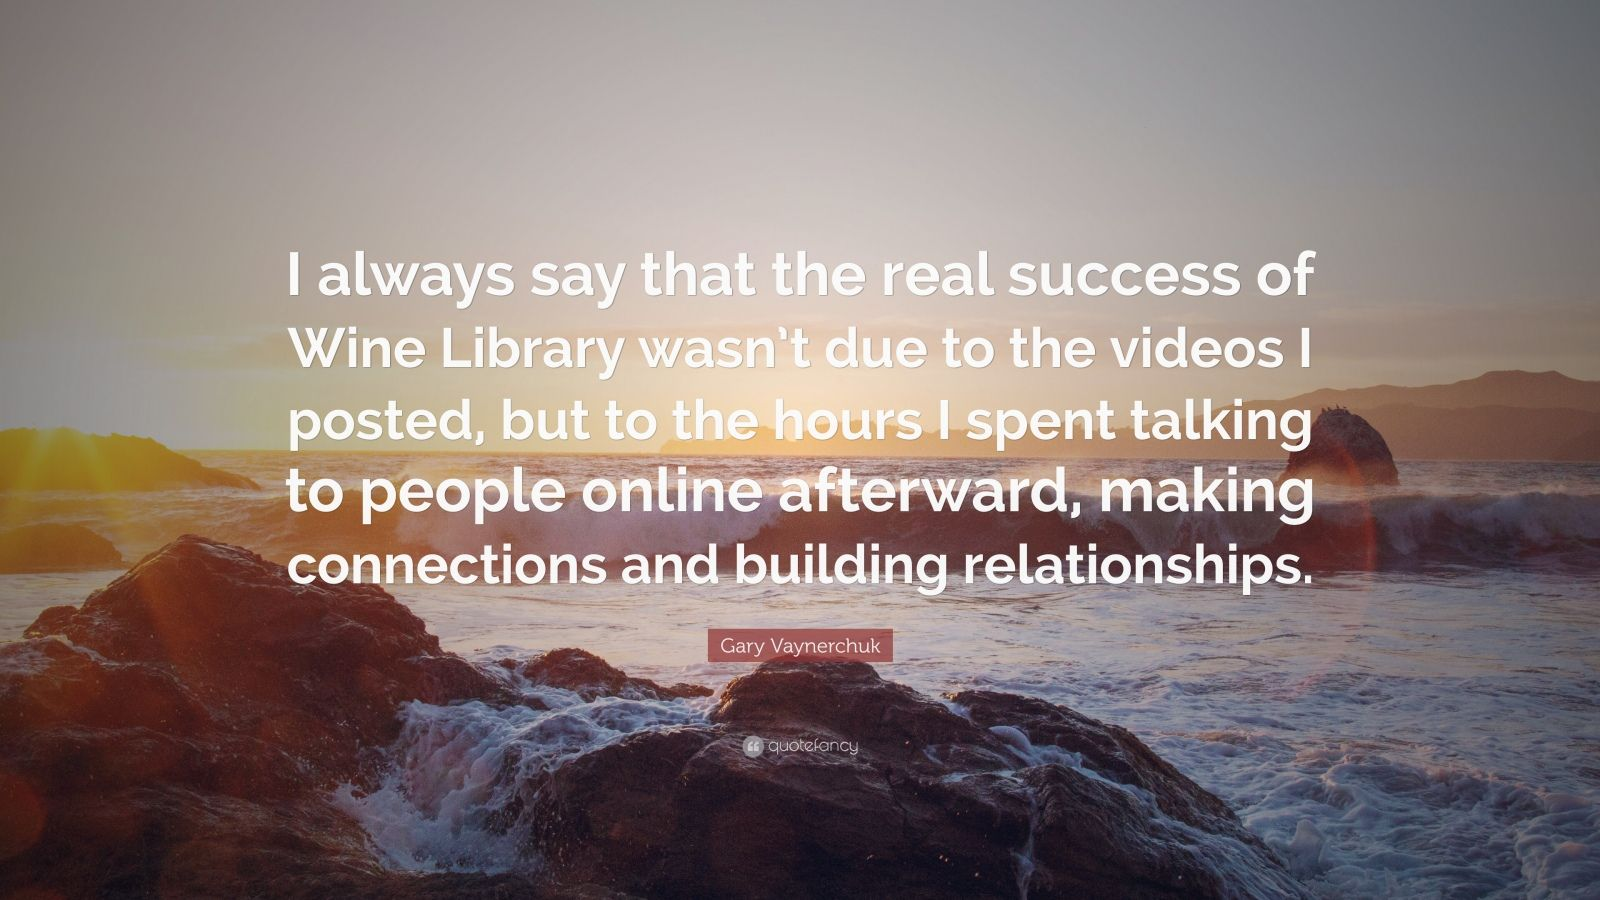 """Gary Vaynerchuk Quote: """"I always say that the real success of Wine Library wasn't due to the videos I posted, but to the hours I spent talking to people online afterward, making connections and building relationships."""""""